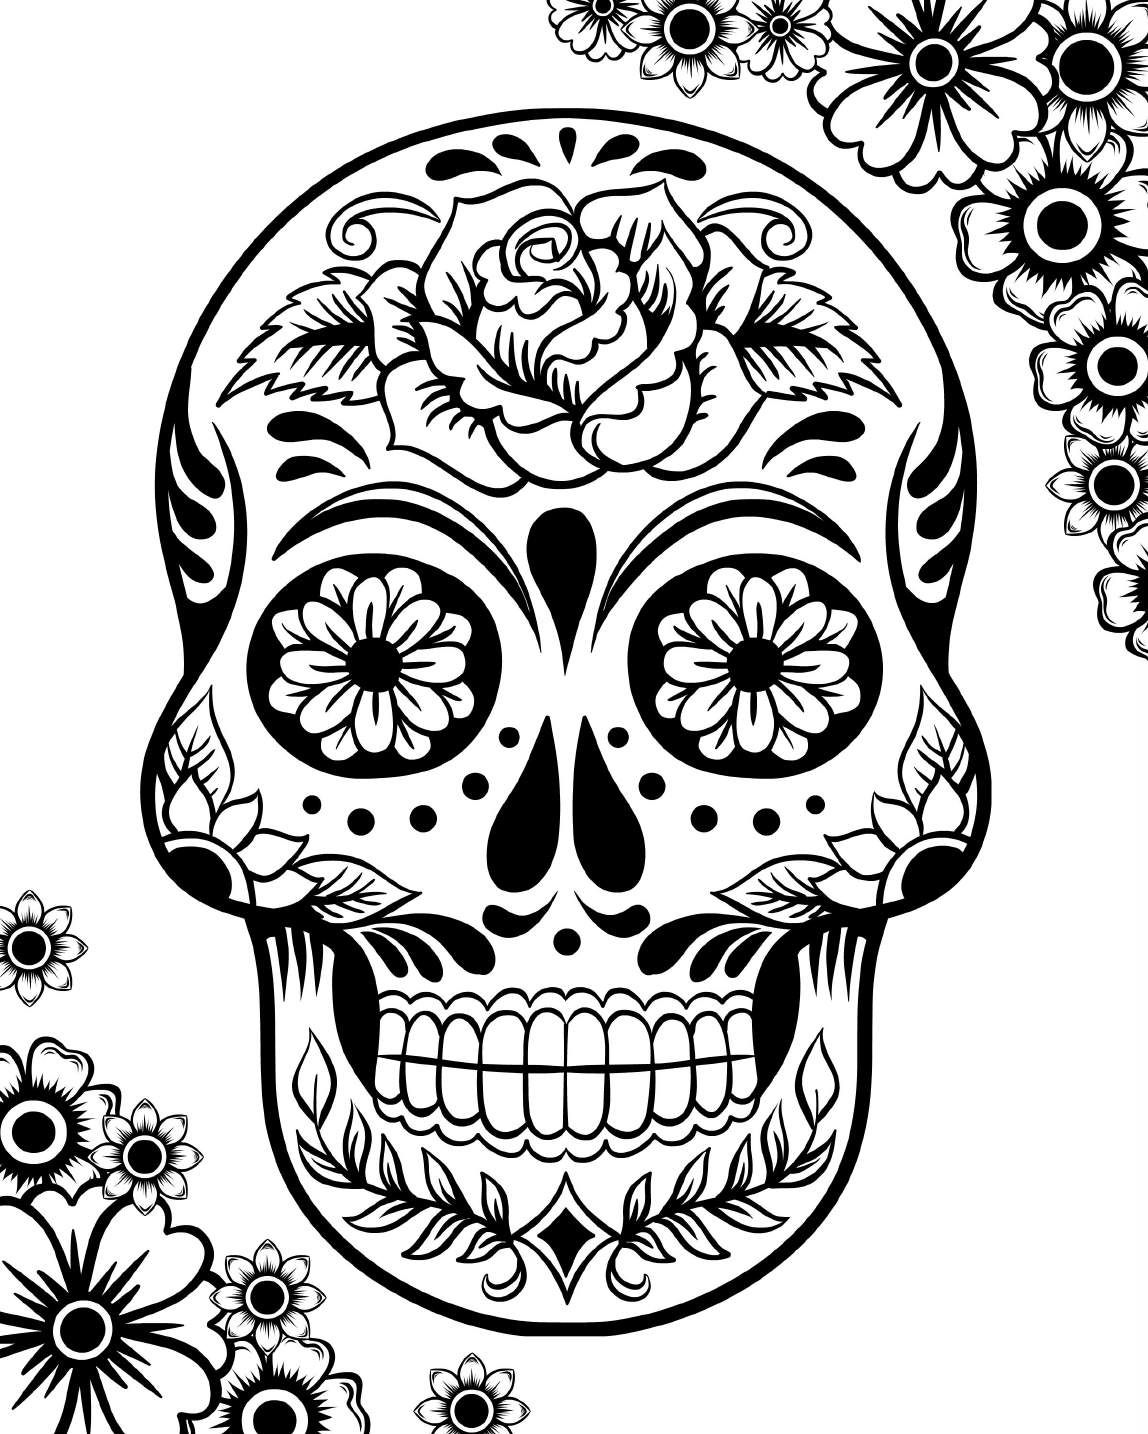 Free Printable Day of the Dead Coloring Pages | Pinterest